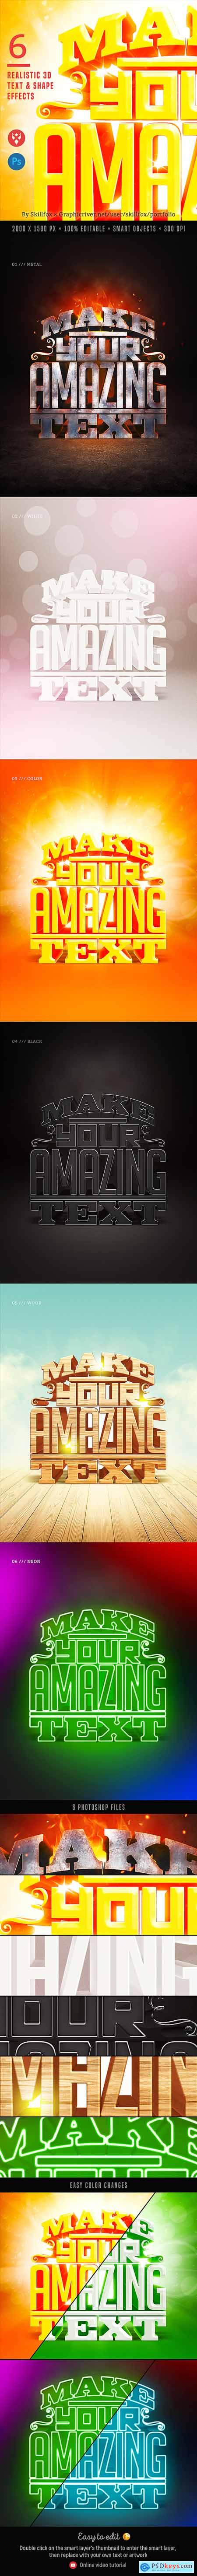 Graphicriver 6 Realistic 3D Text Effects